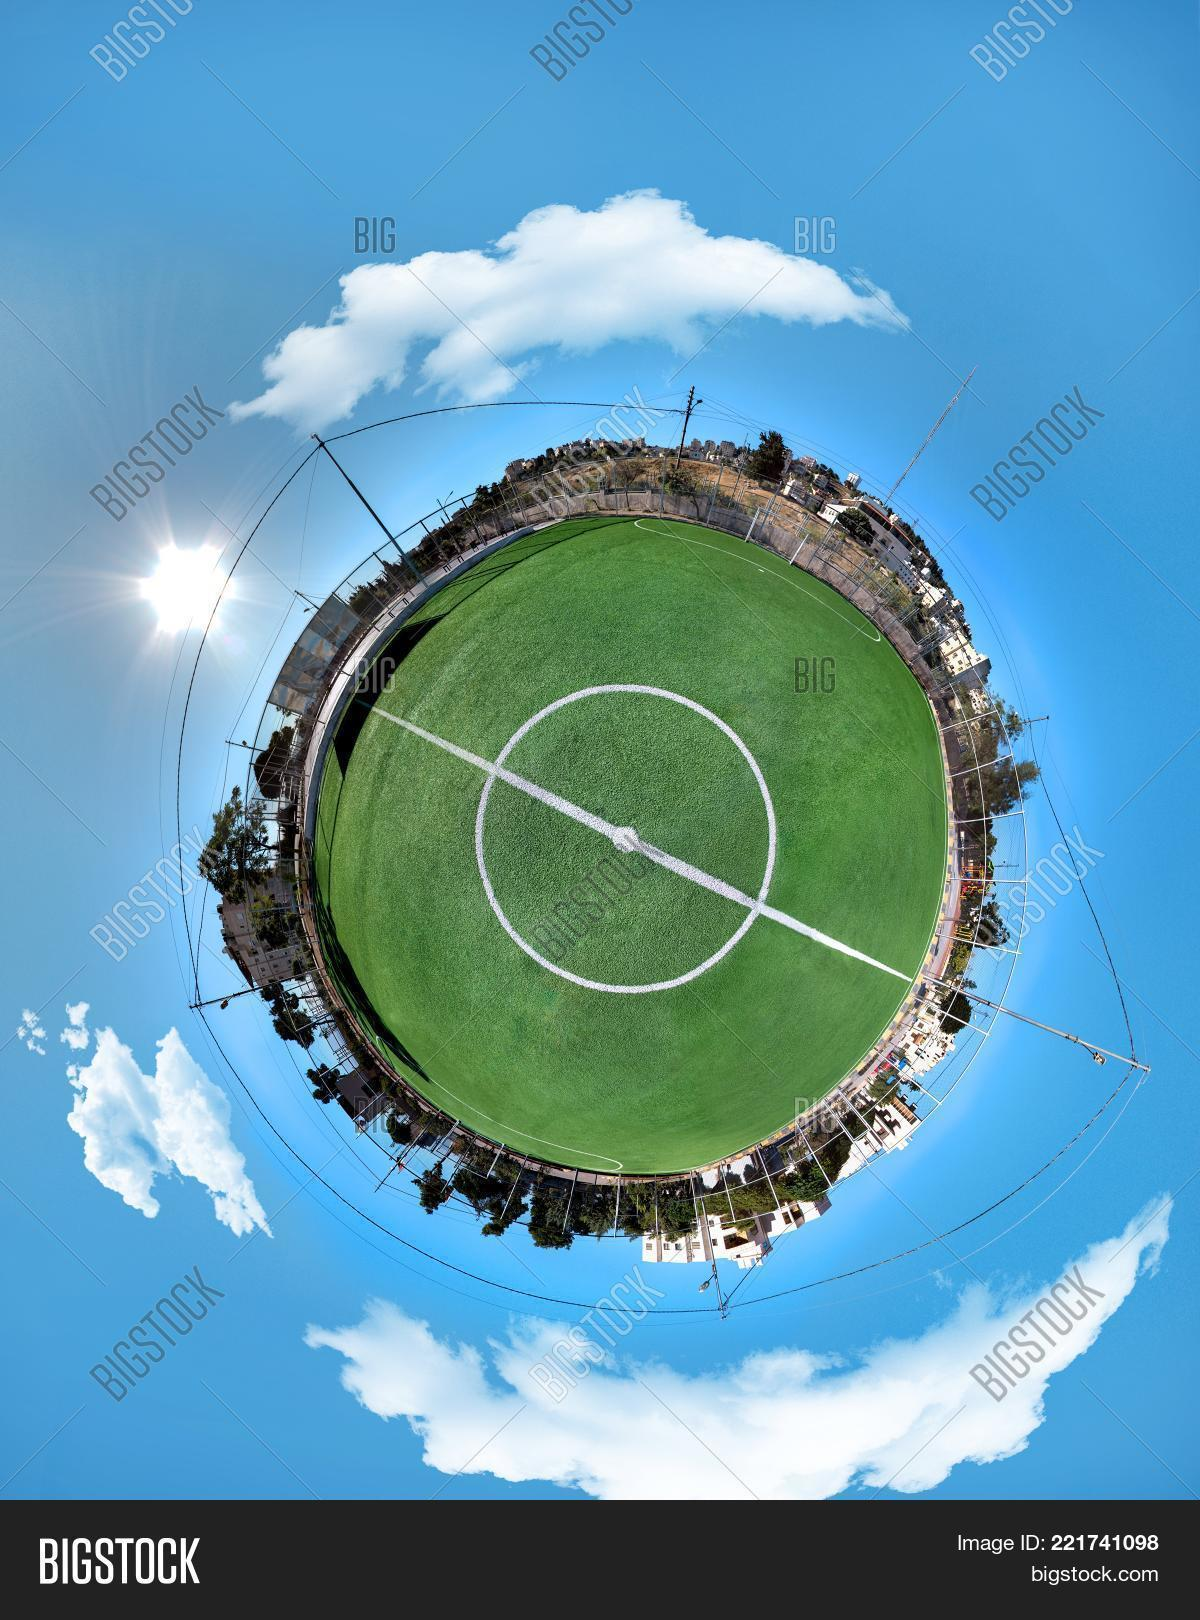 Football Soccer Fields Image & Photo (Free Trial) | Bigstock